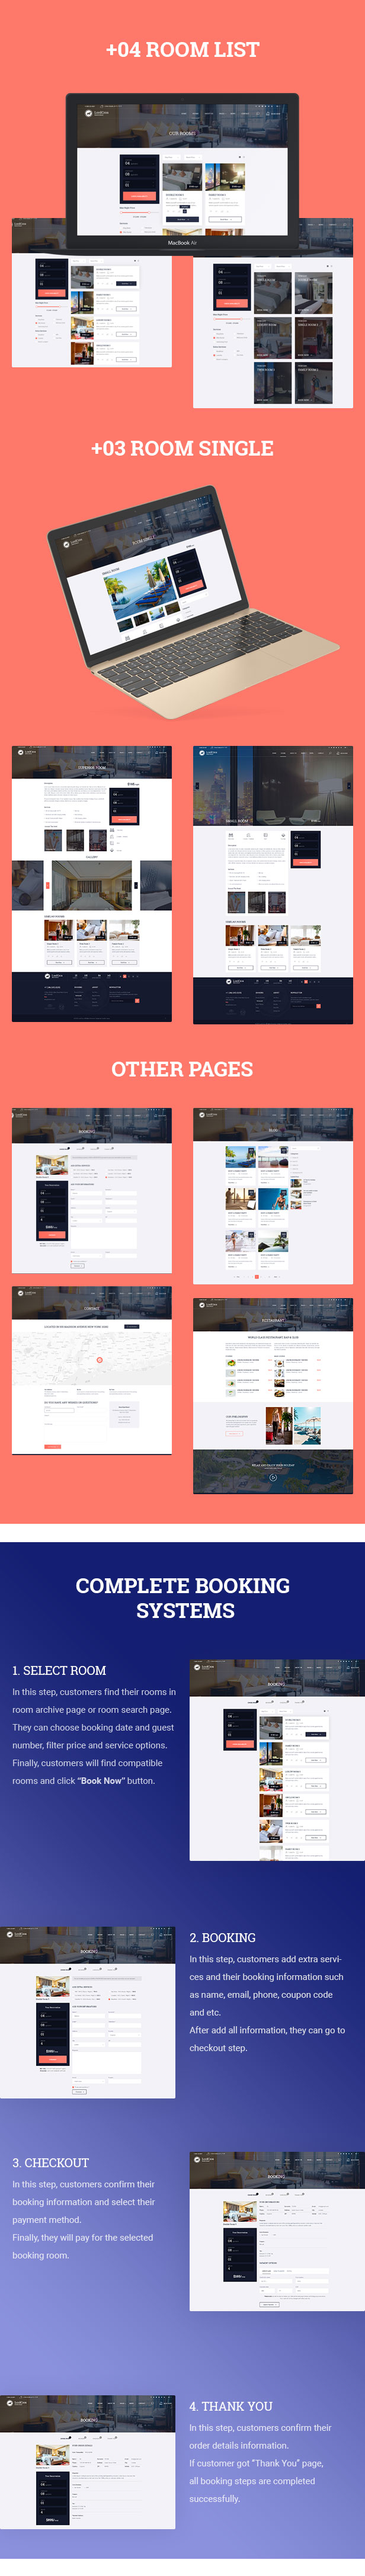 LordCros - Hotel Booking WordPress Theme - 5